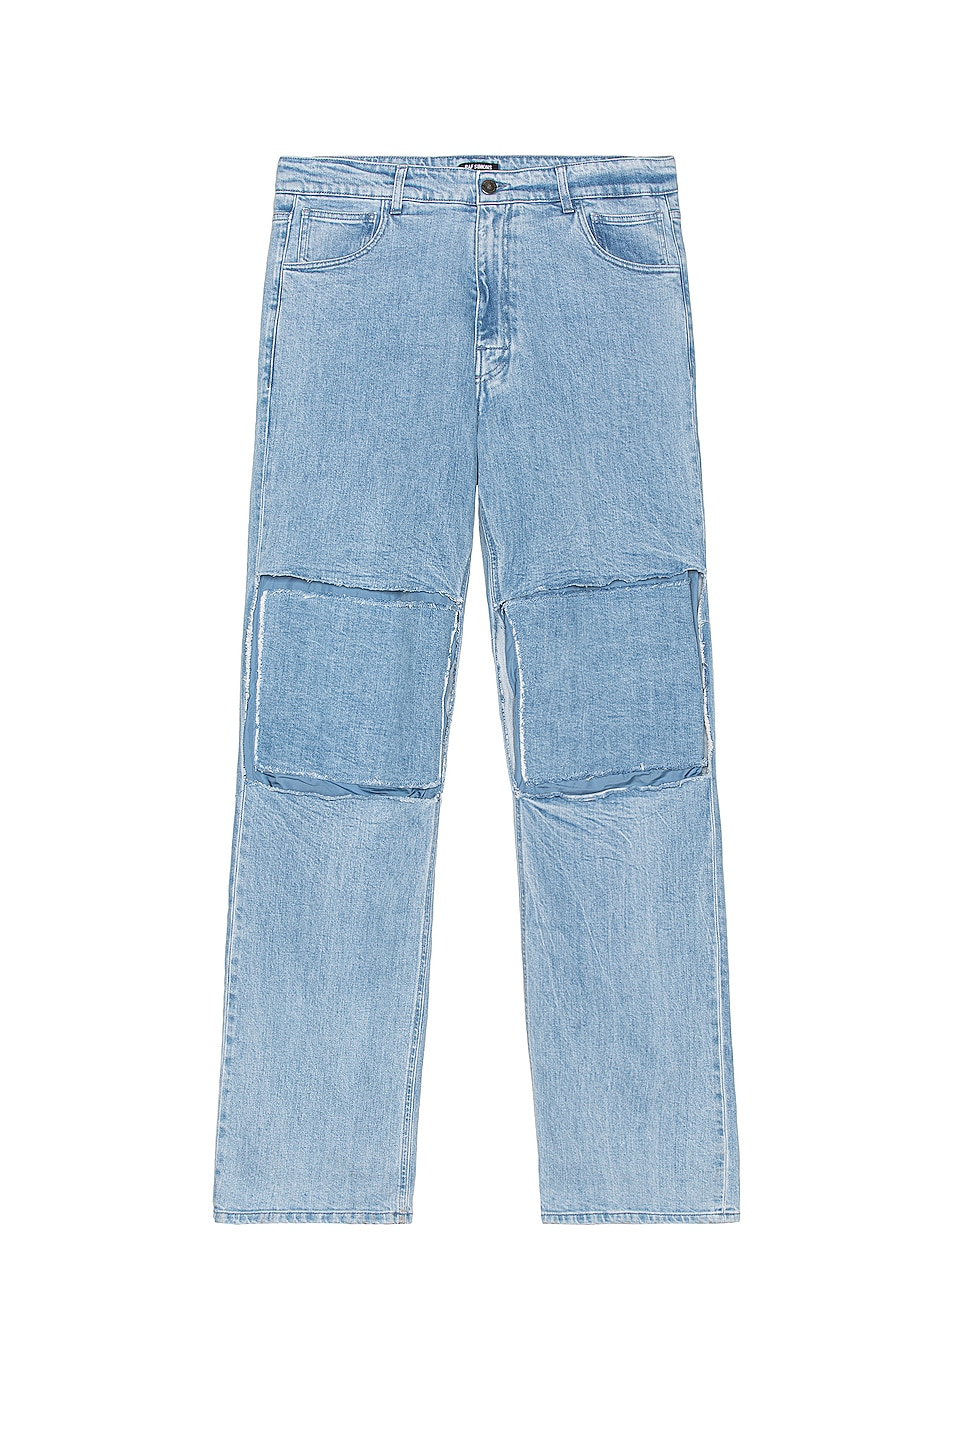 Image 1 of Raf Simons Relaxed Fit Denim Pants With Cut Out Knee Patches in Very Light Blue